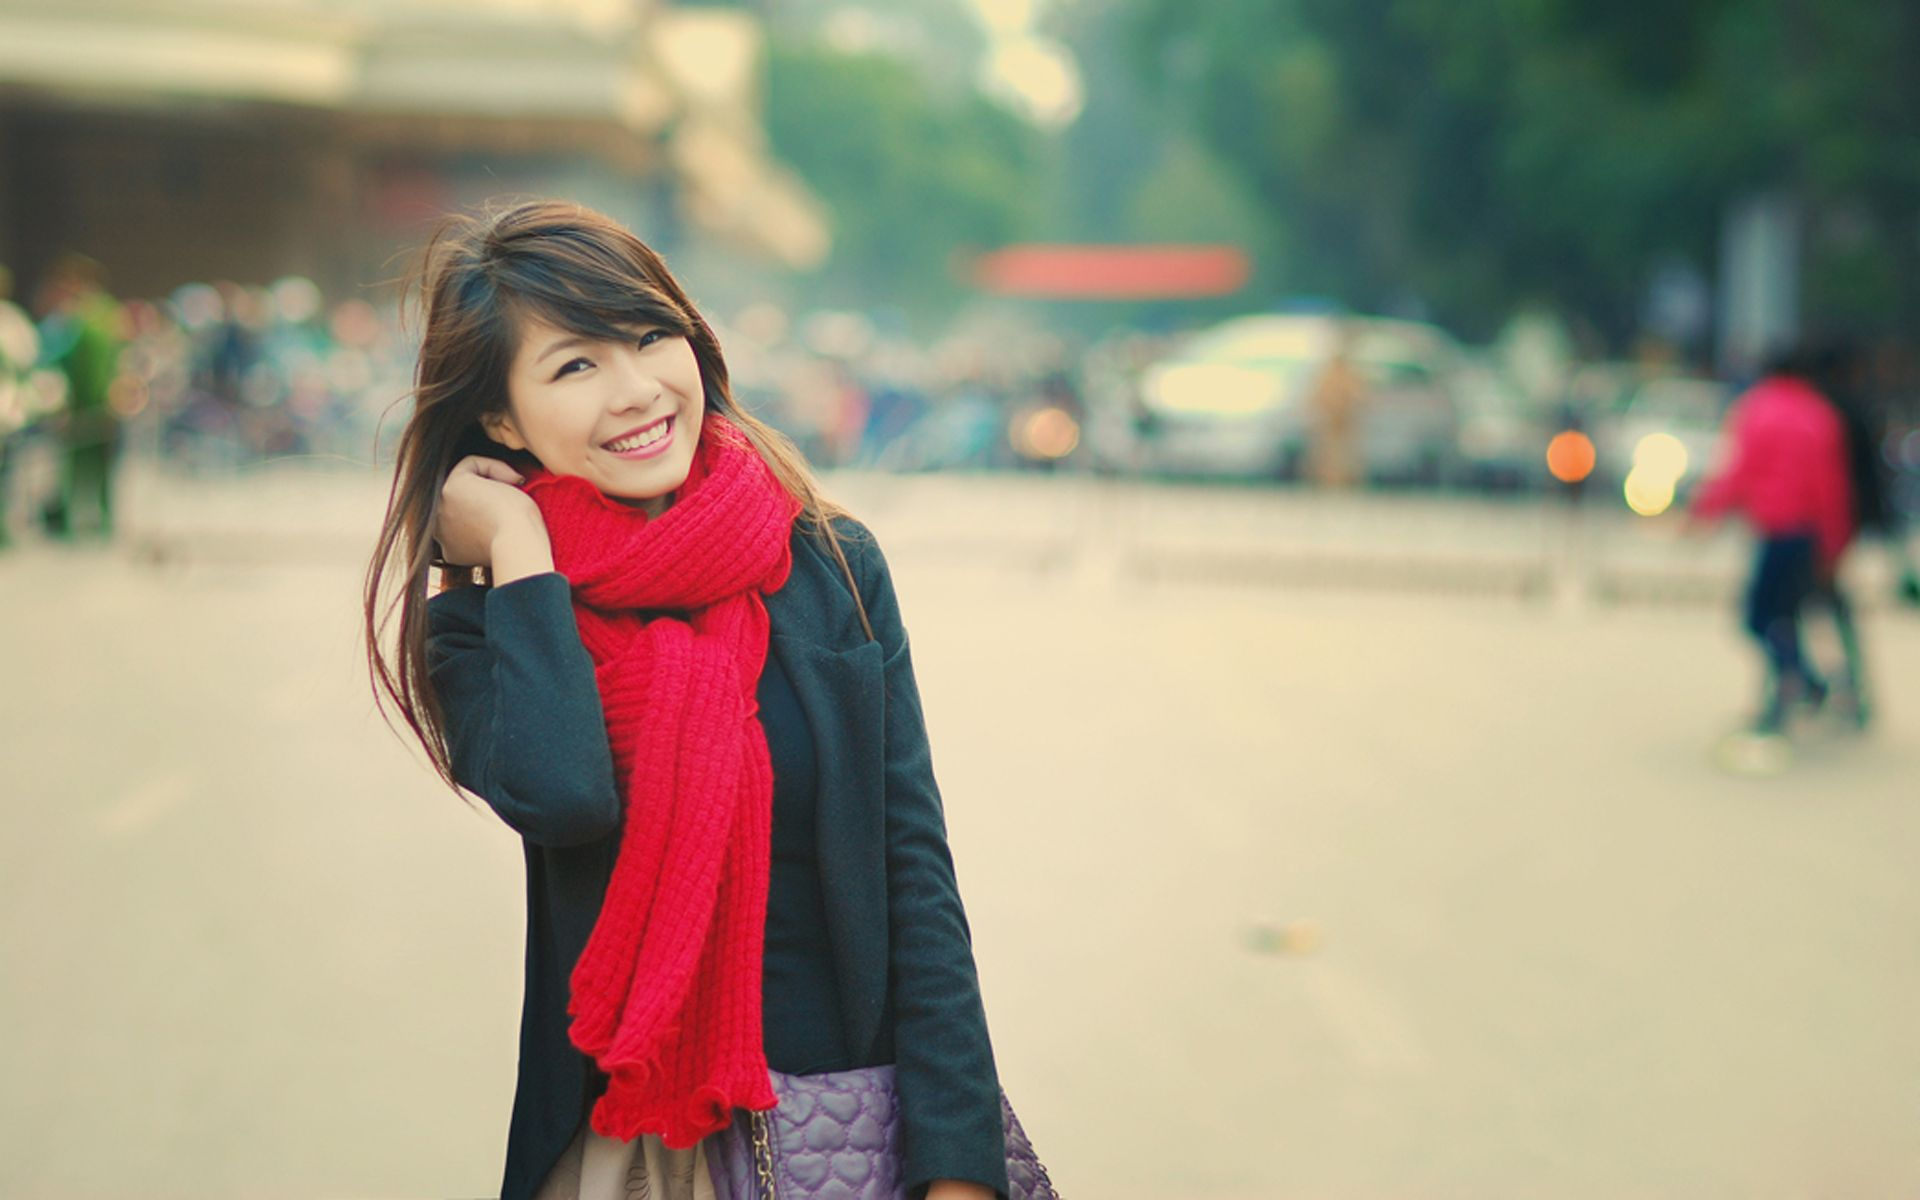 Hd wallpaper cute girl - Find This Pin And More On Hd Wallpapers Indian Beautiful Girls